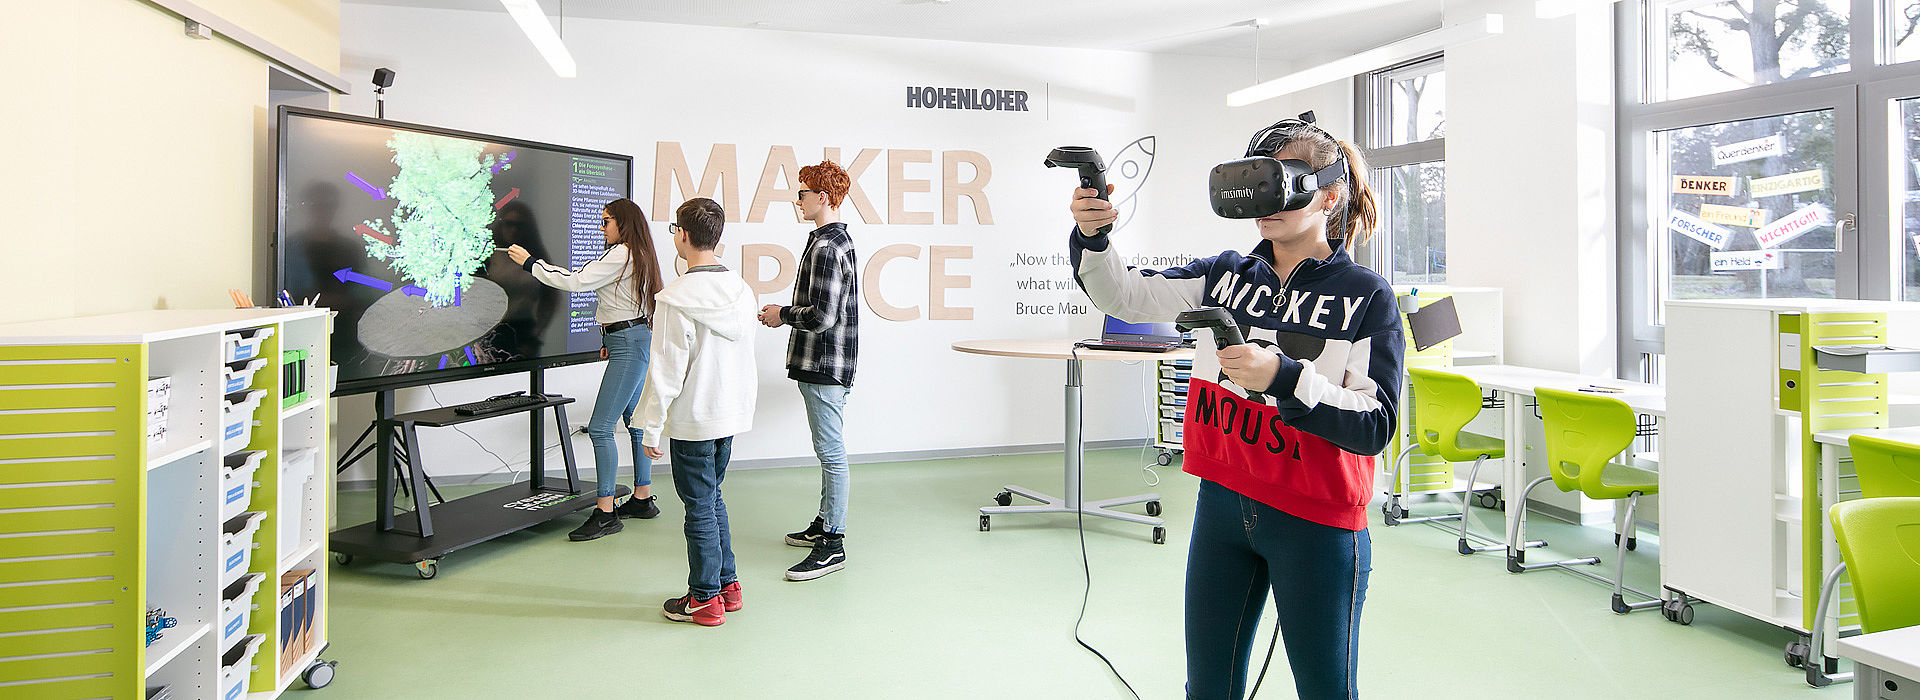 Image: Virtual reality at Makerspace